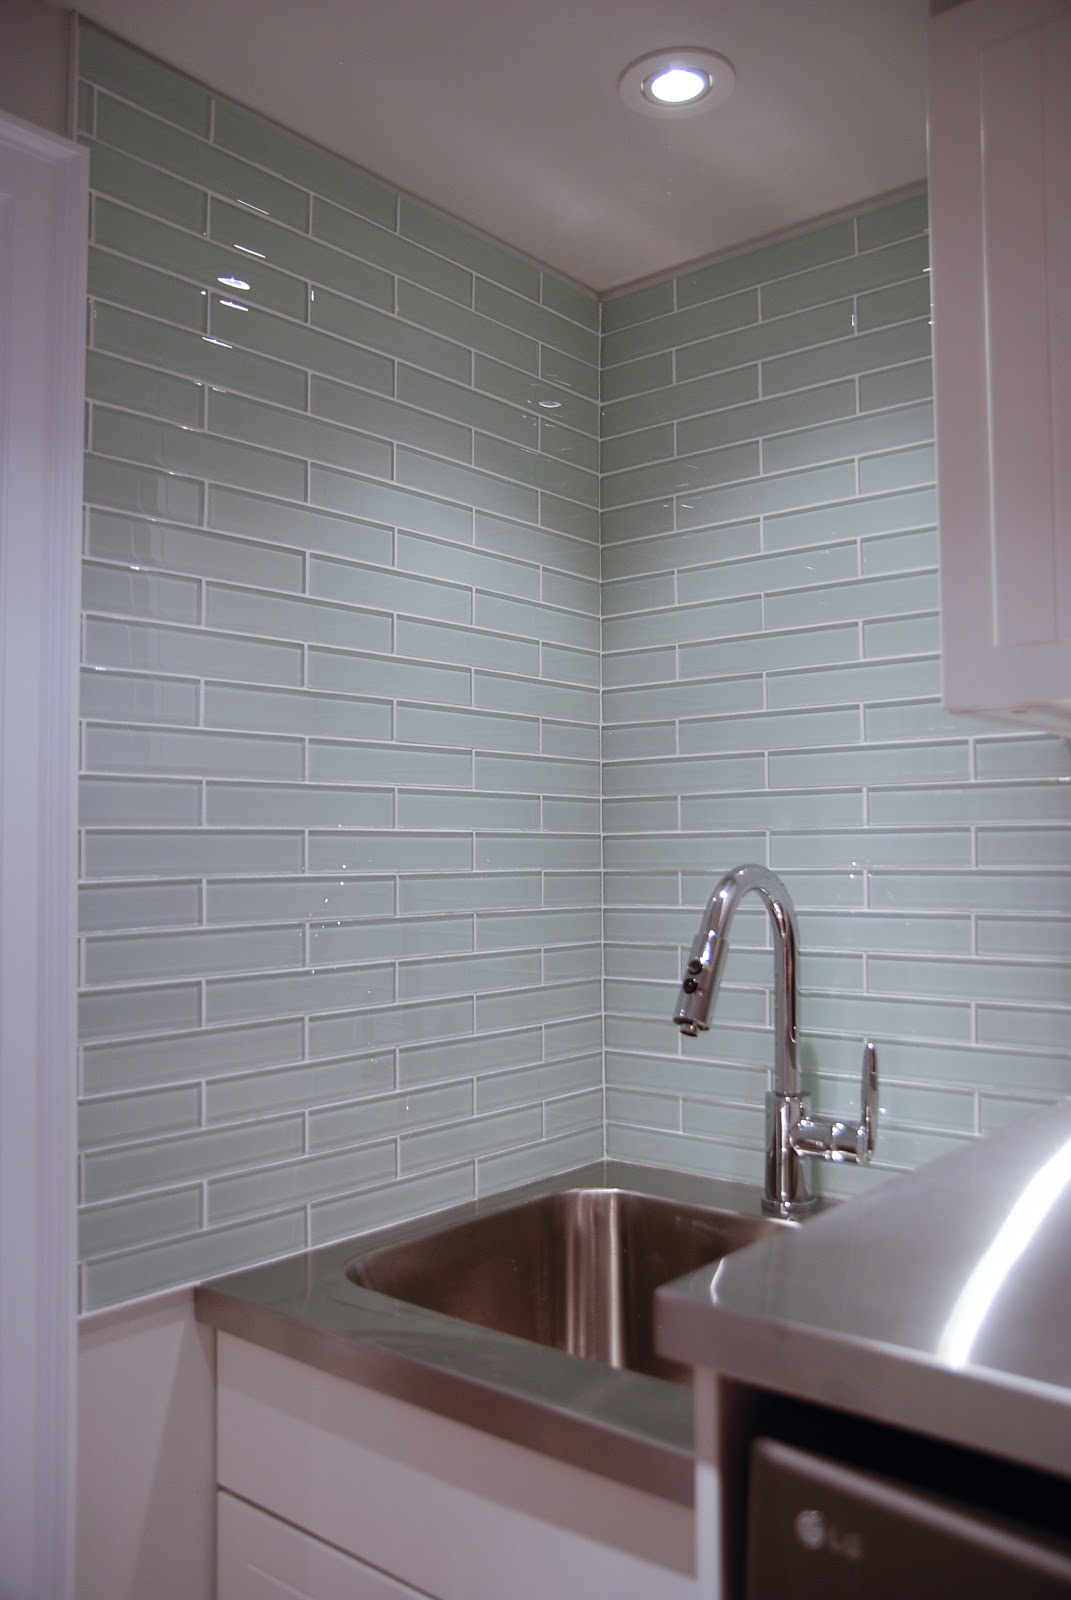 Http Www Ramblingrenovators Ca 2012 11 Glass Tile Laundry Room Backsplash Html